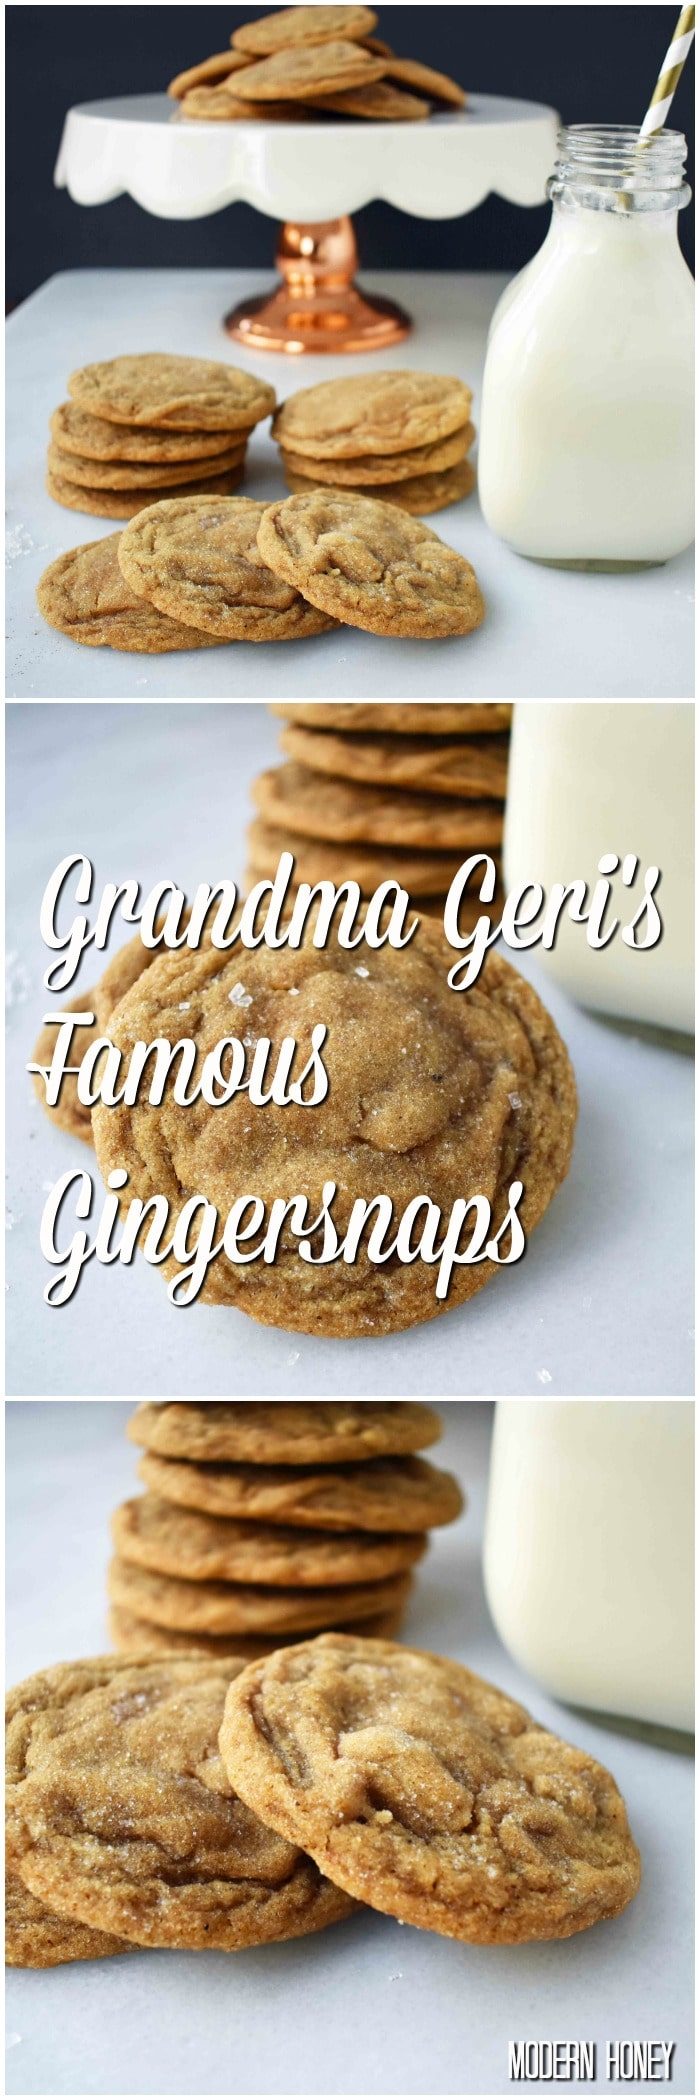 Grandma Geri's Gingersnaps. Soft gingersnaps filled with spices and a secret ingredient. These cookies are so popular for a reason!